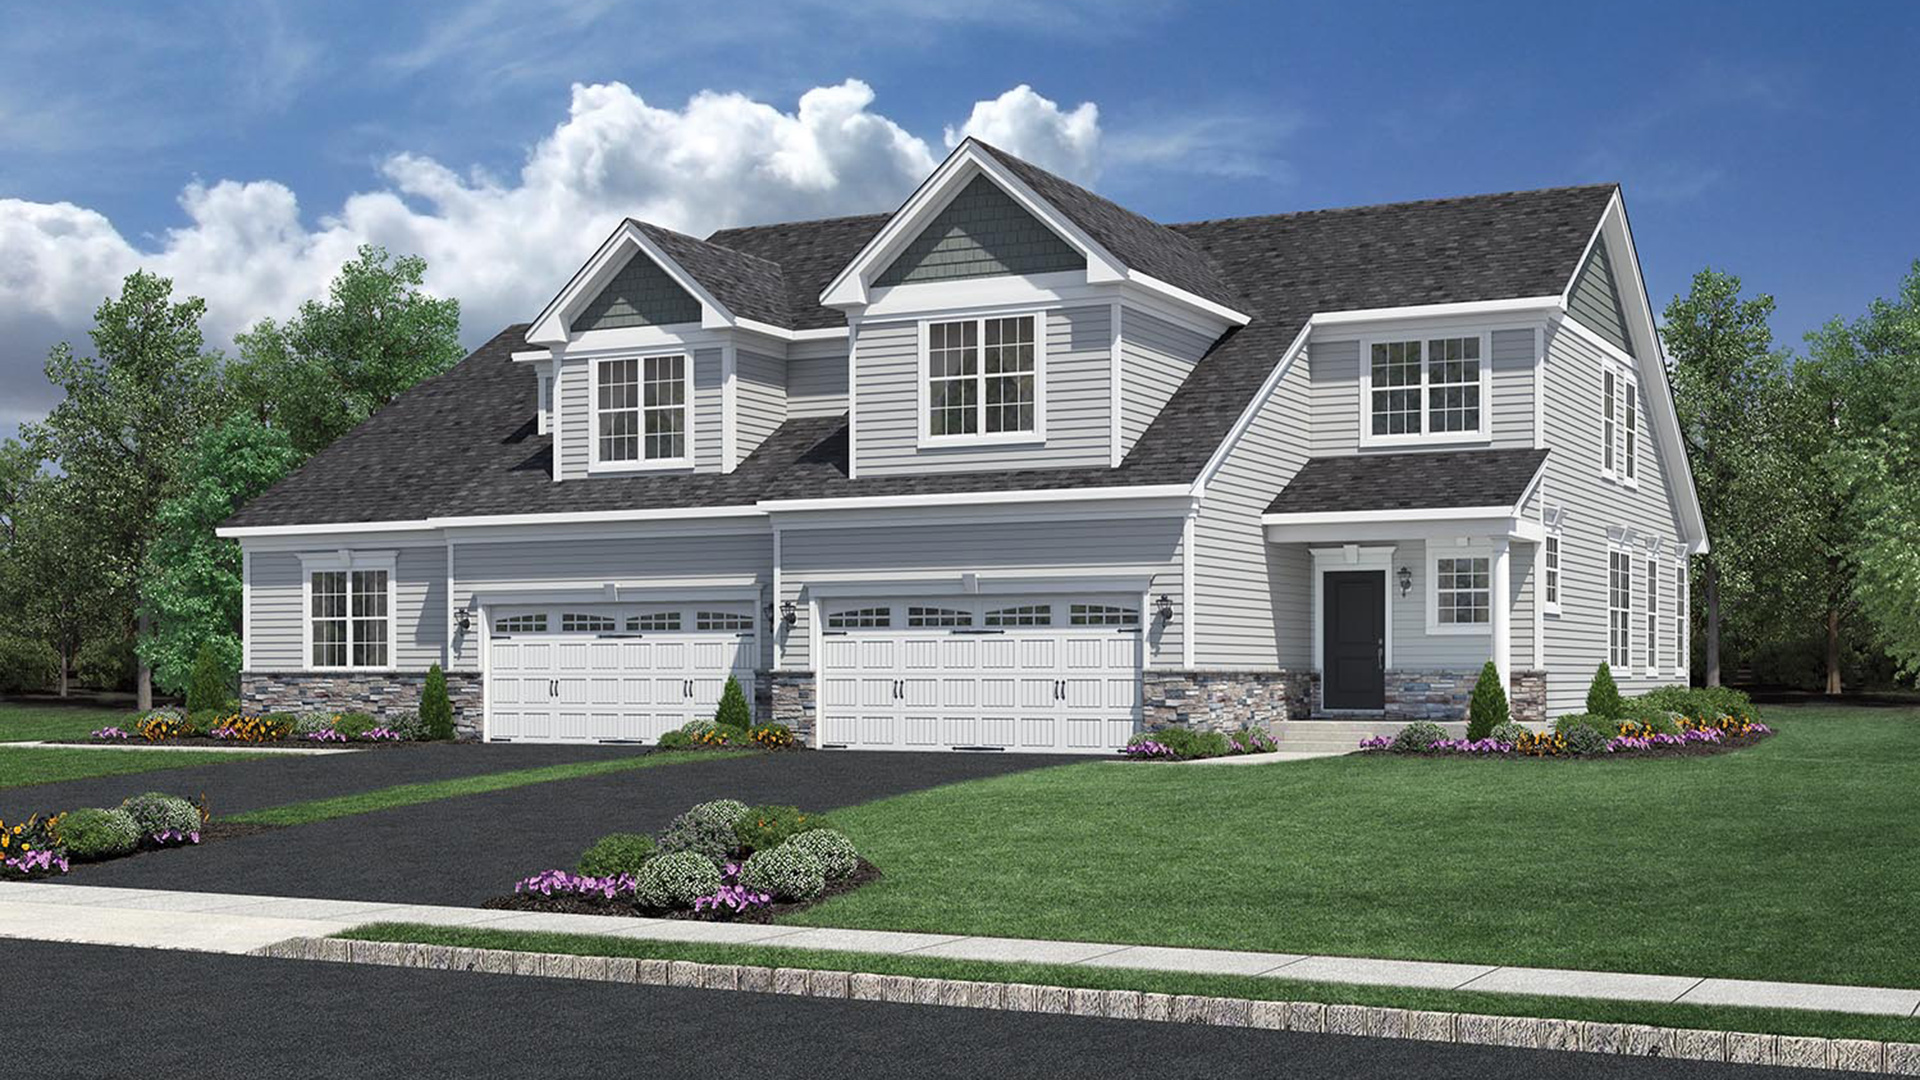 Regency at wappinger meadows the acorn elite home design for Acorn house designs